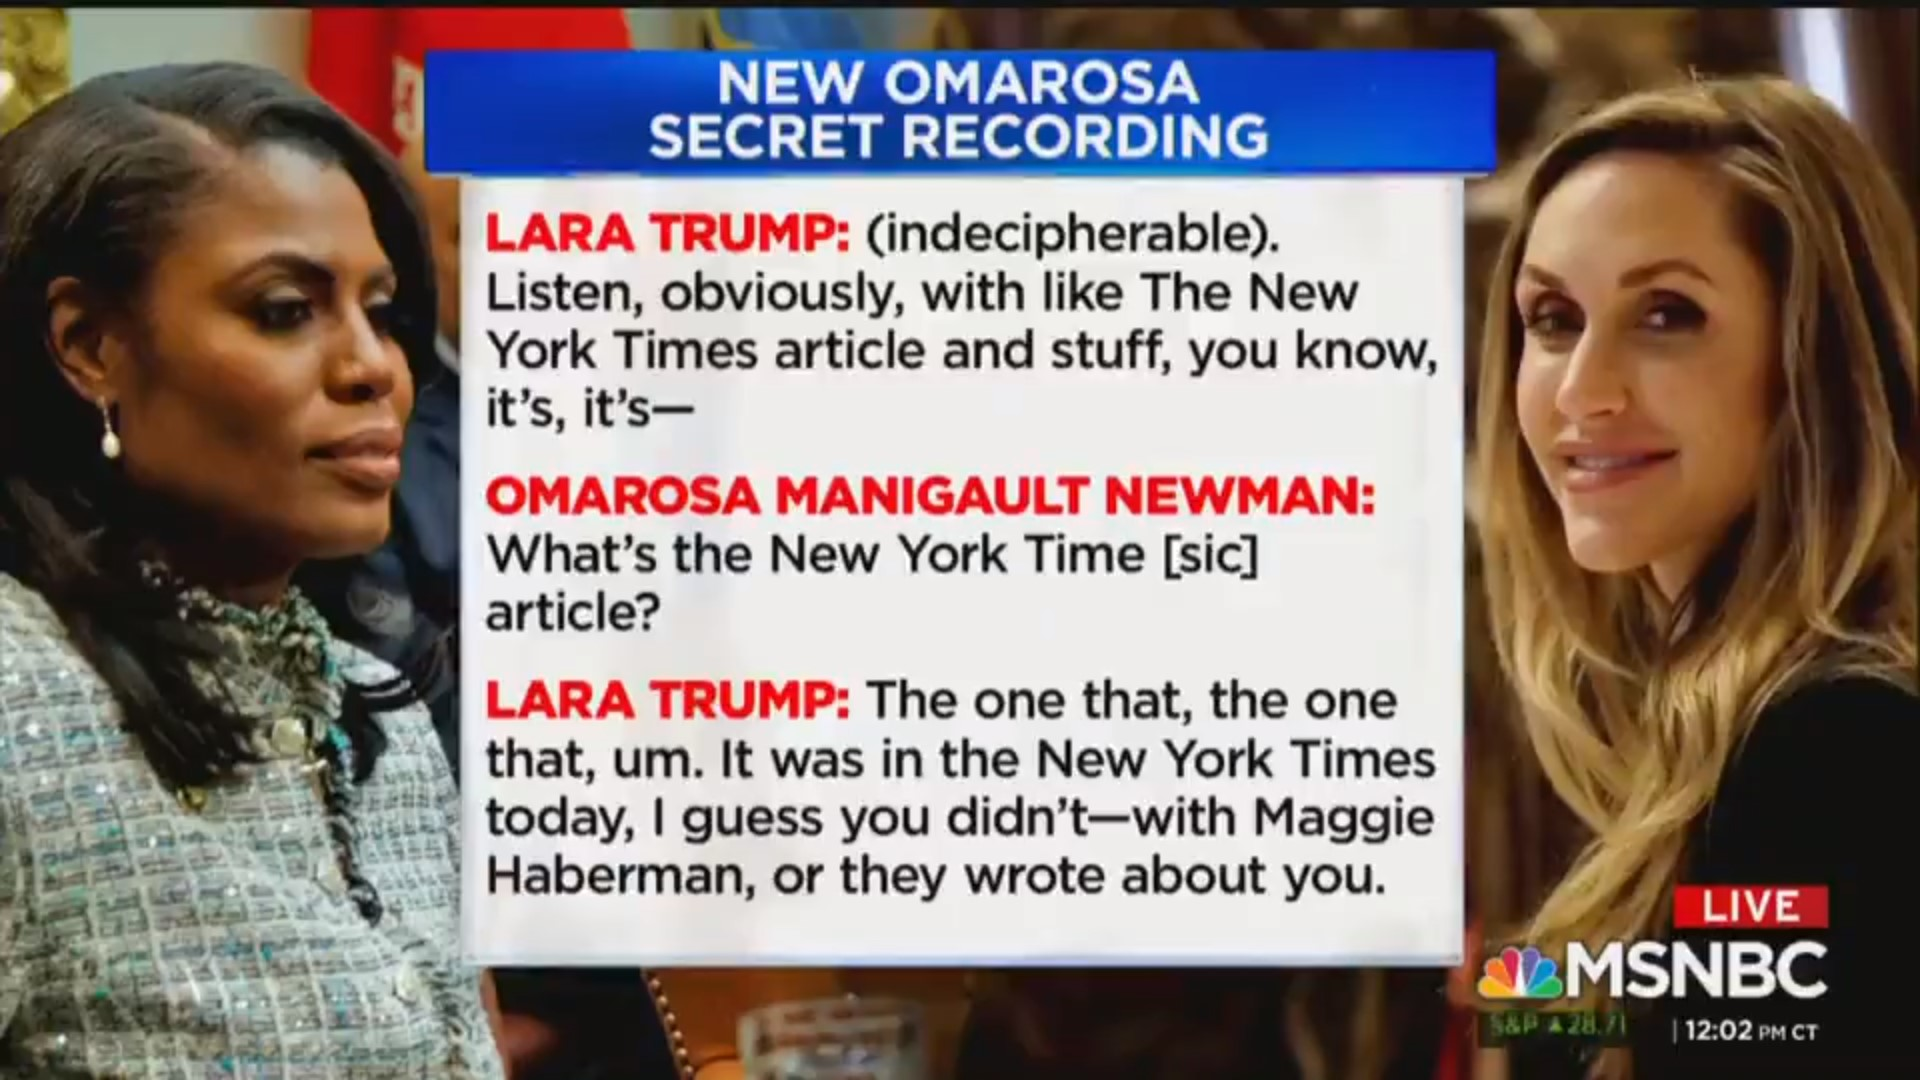 Lara Trump Reacts To Omarosa's Latest Tape Release: 'I Hope It's All Worth It For You'